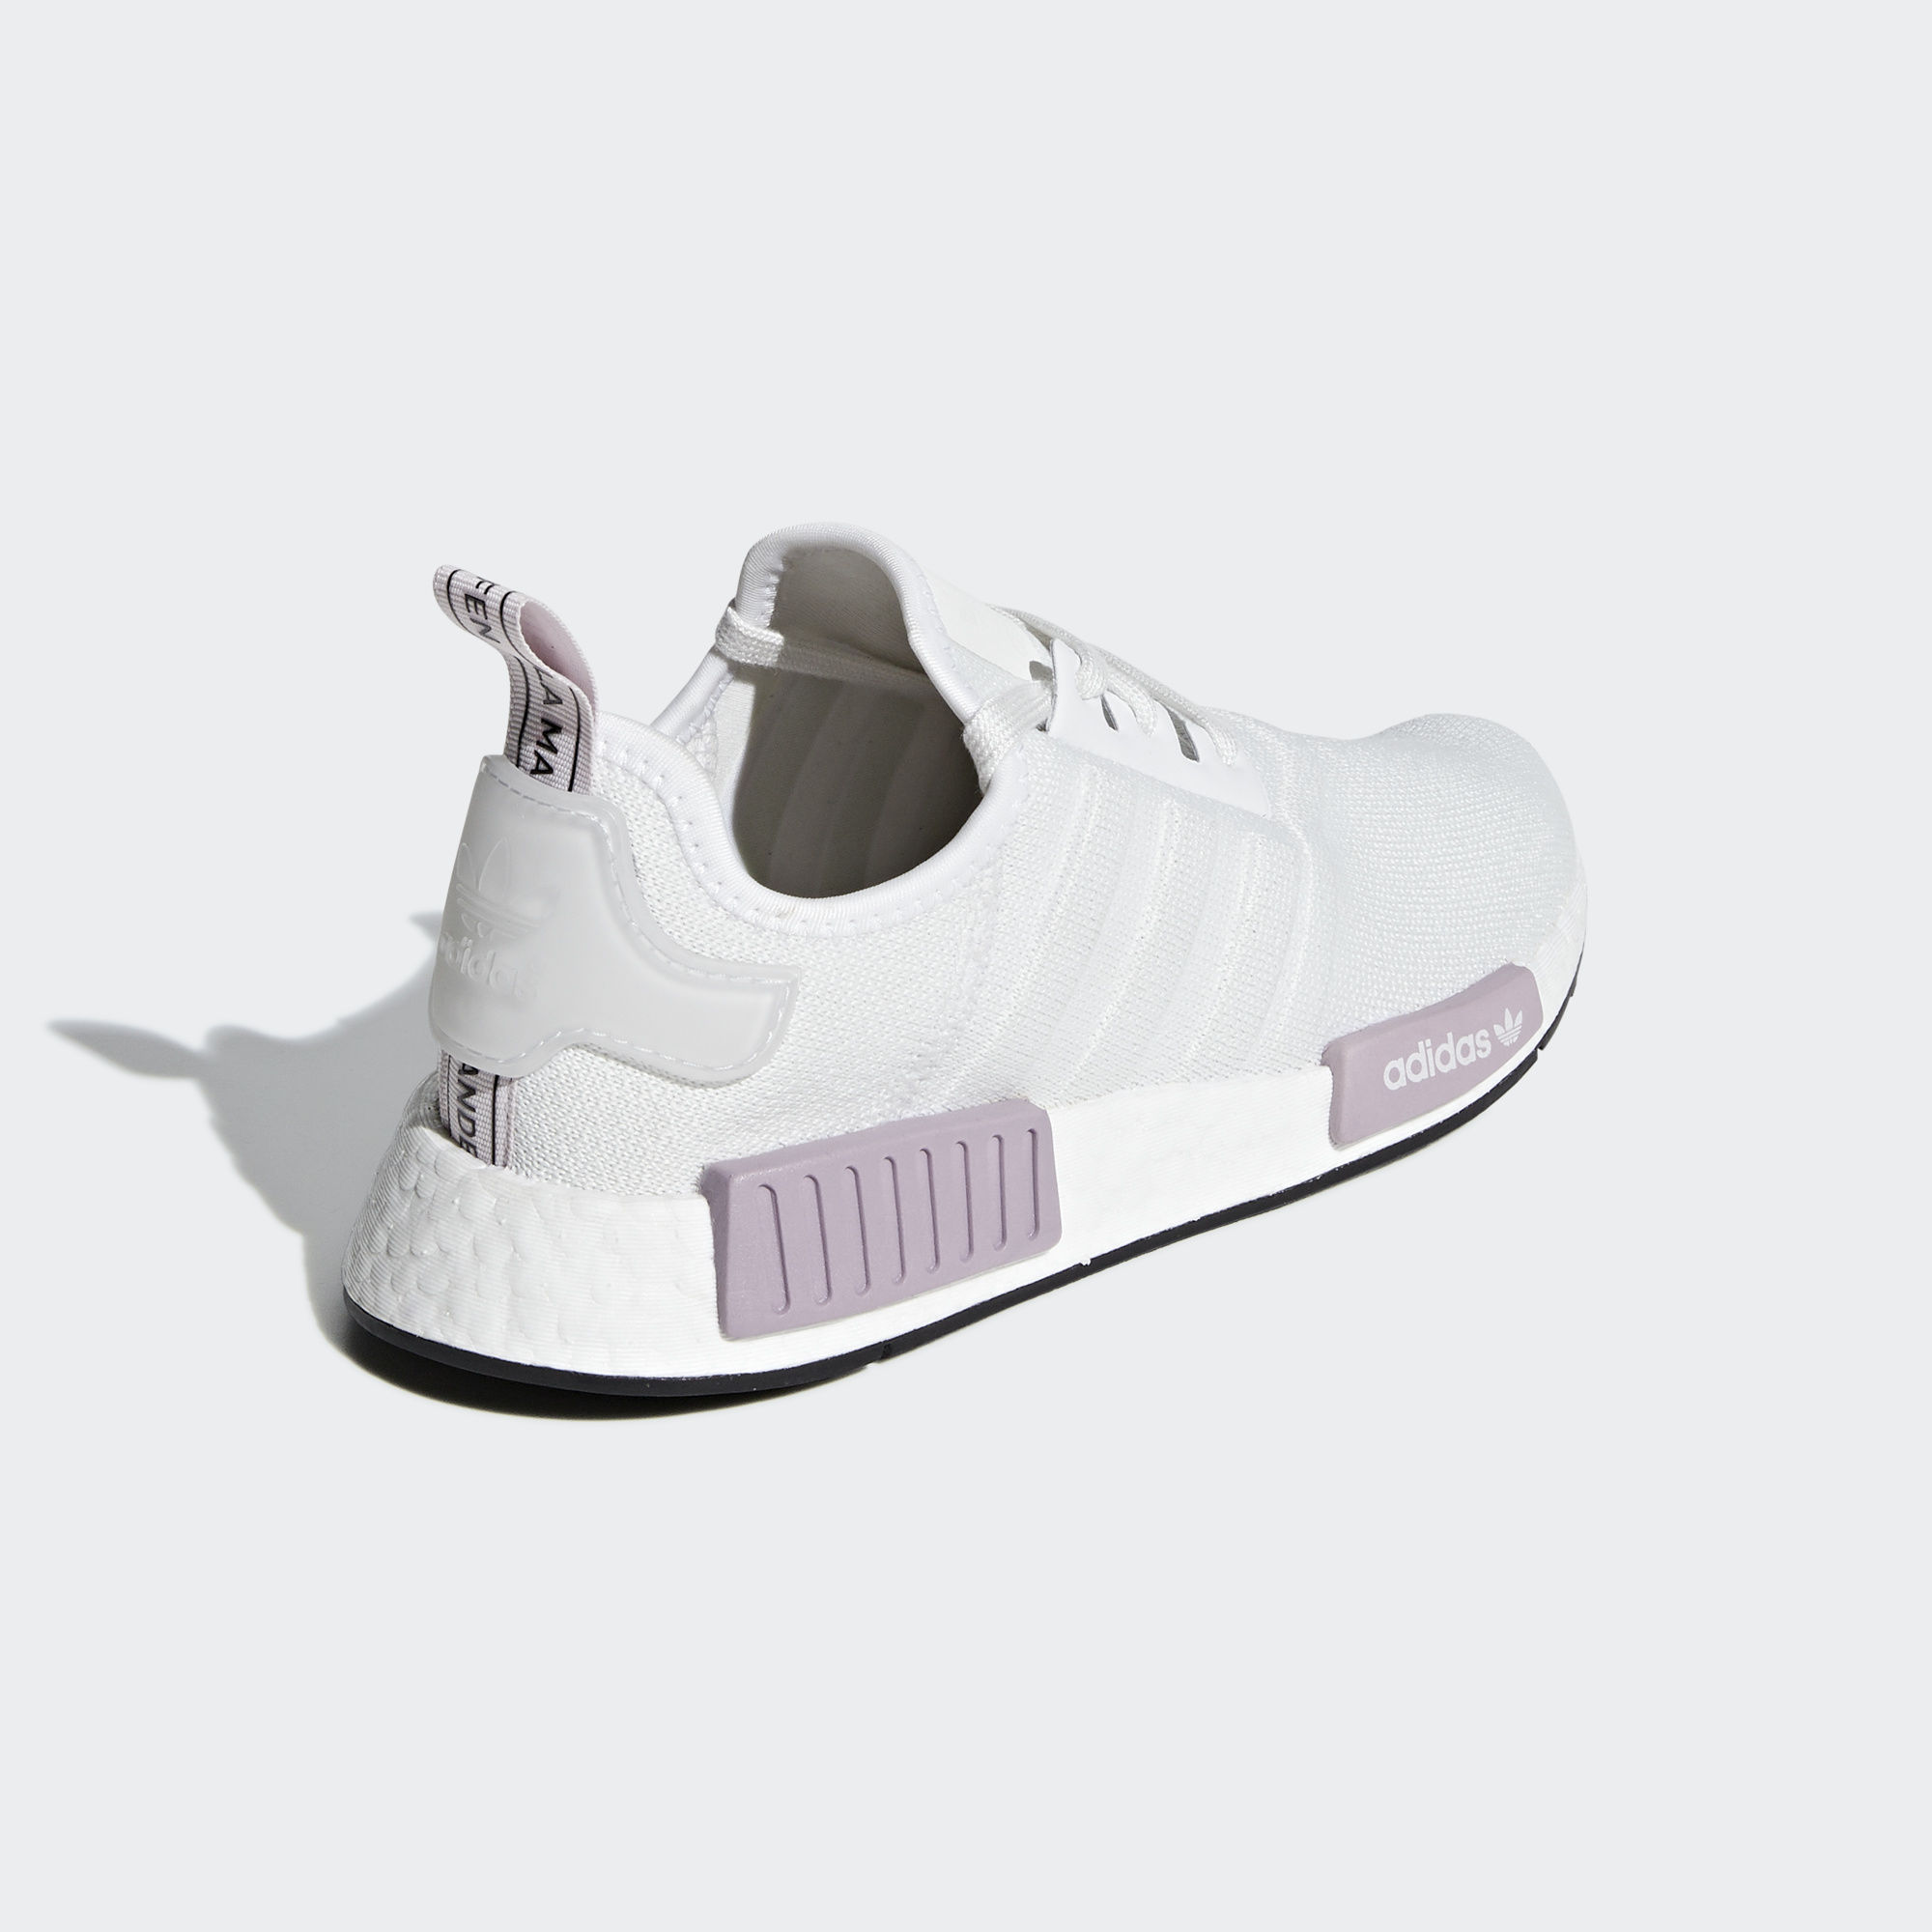 adidas nmd crystal white orchid tint